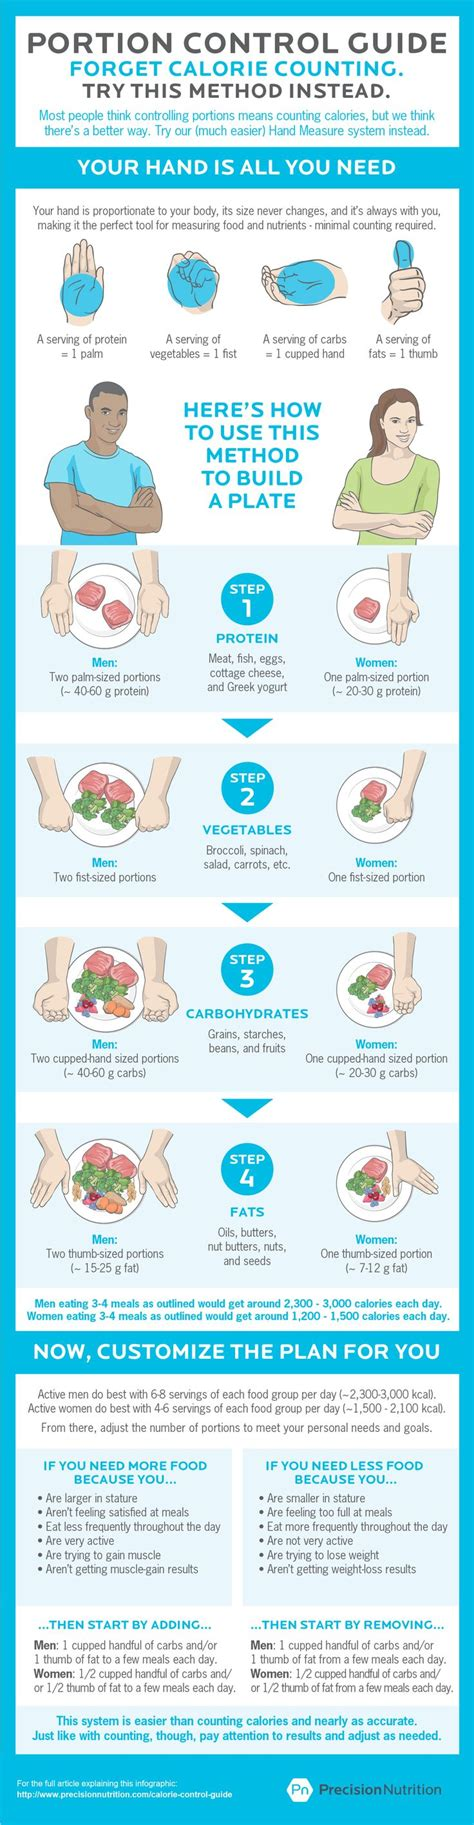 weight loss that control food intake picture 10